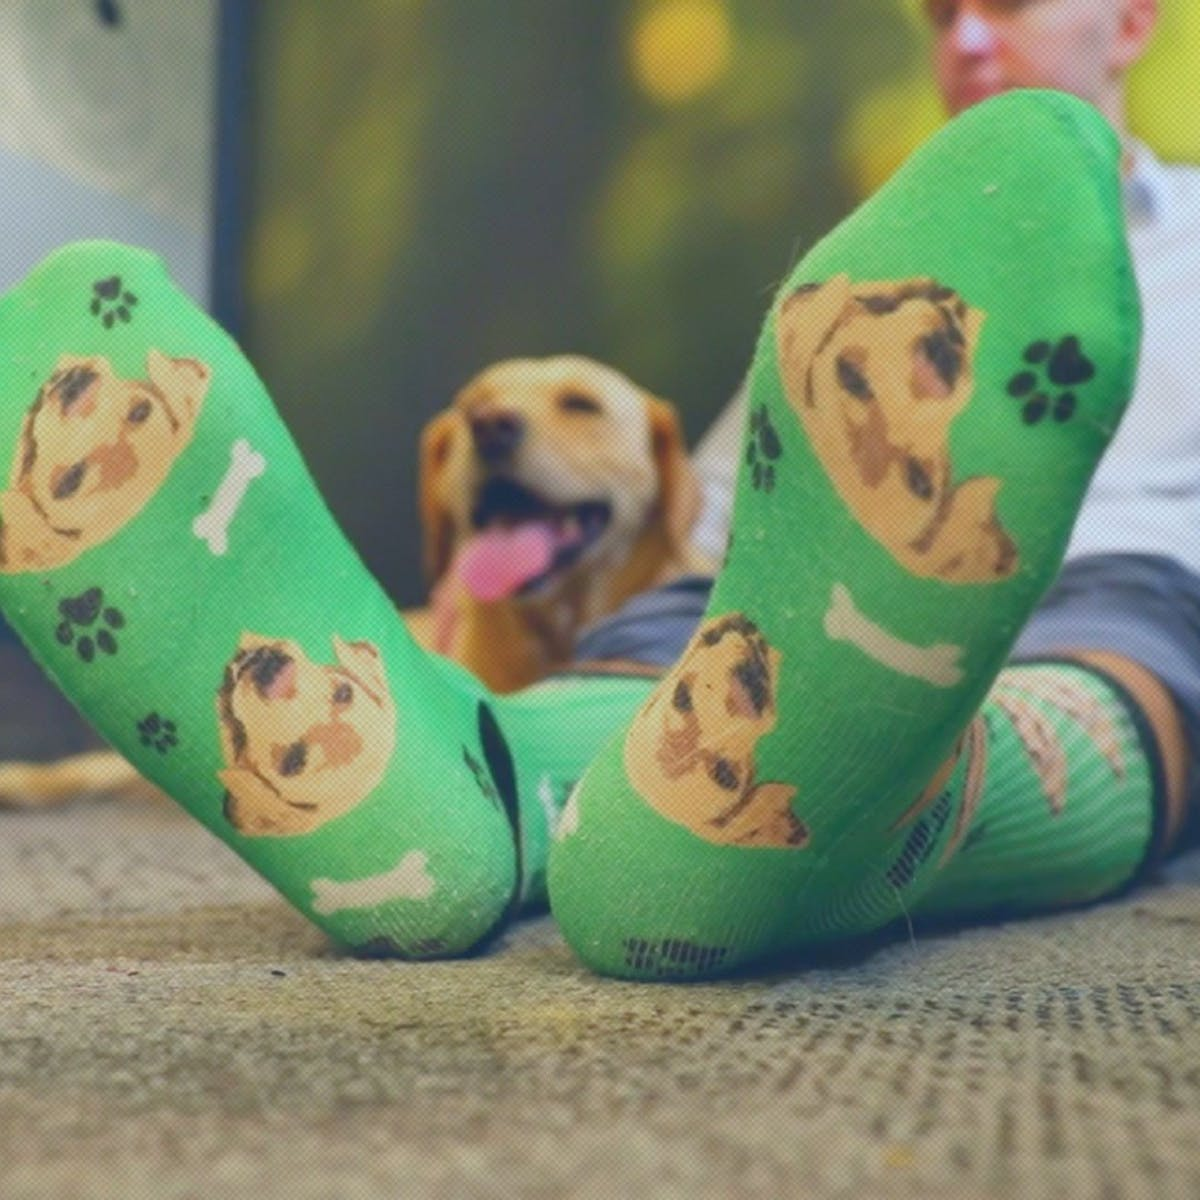 Isn't It Time You Started Wearing Socks With Your Pet's Face Printed on Them?